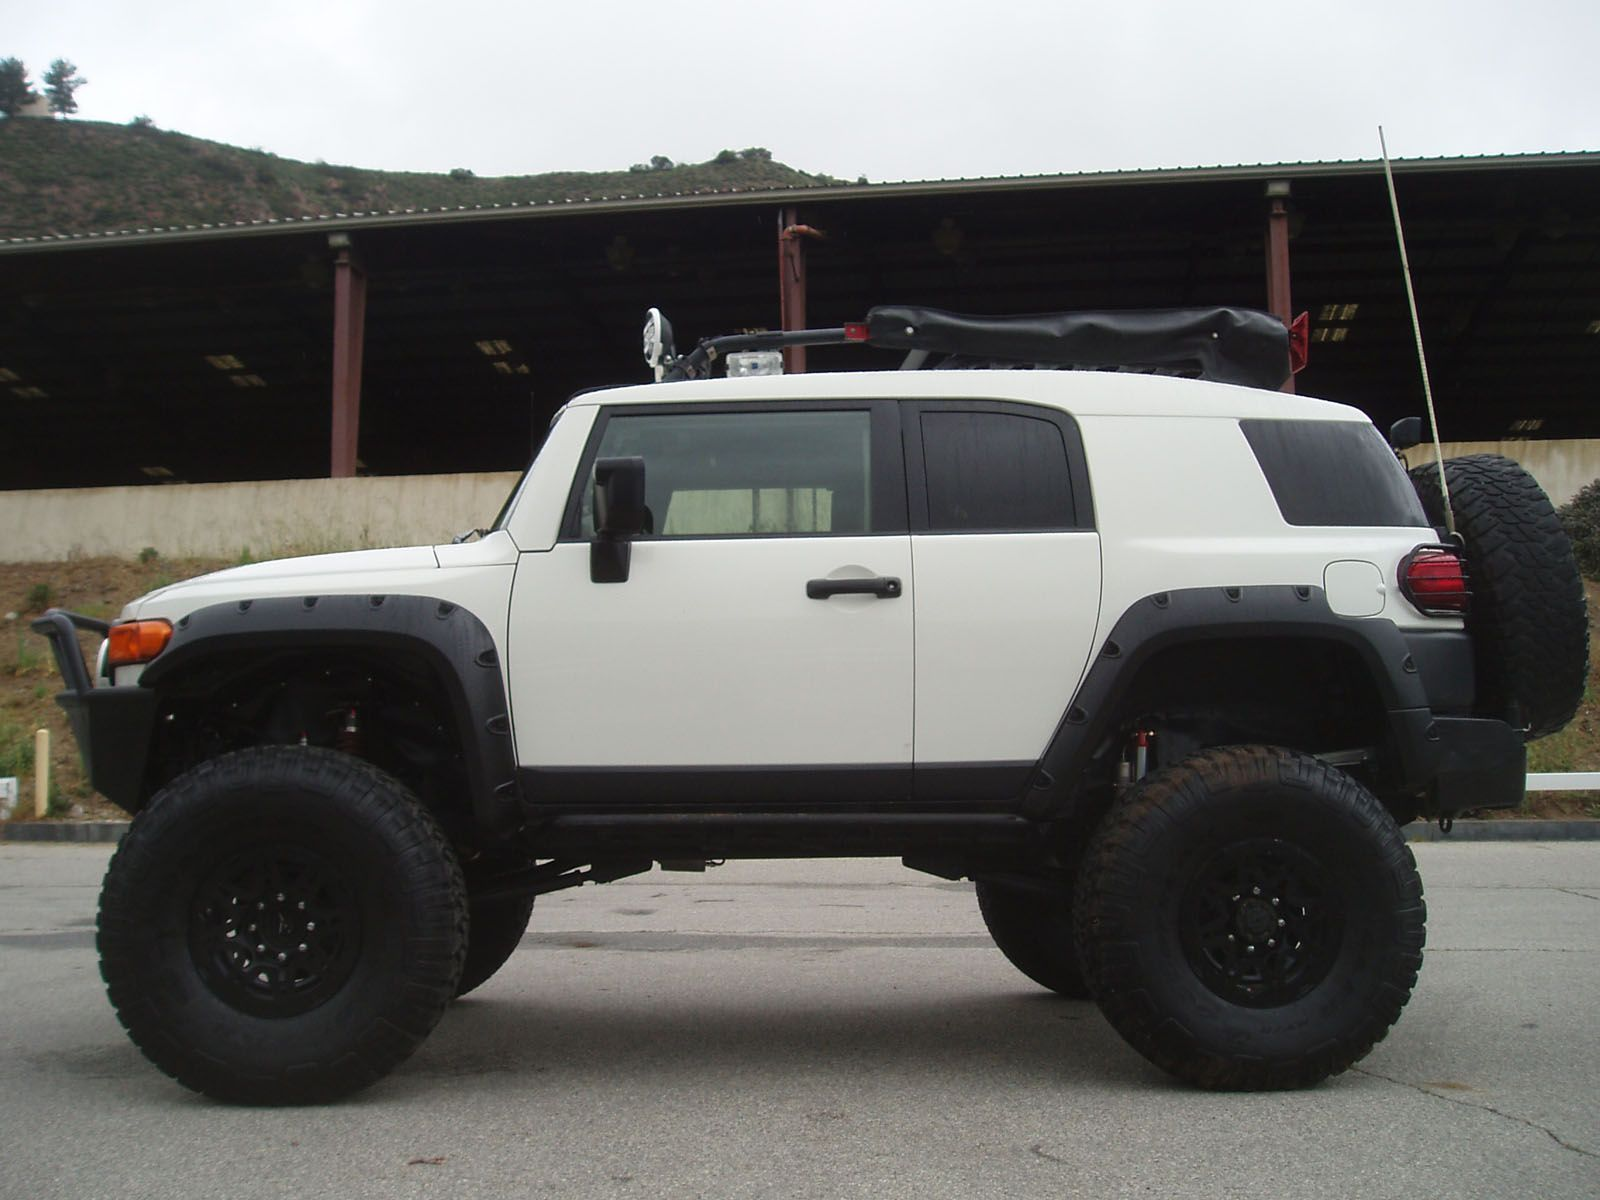 Toyota Fj Cruiser Lifted For Sale Toyota Fj Cruiser Lifted For Sale 8 Home And Leisure Toyota Fj Cruiser Fj Cruiser Custom Fj Cruiser